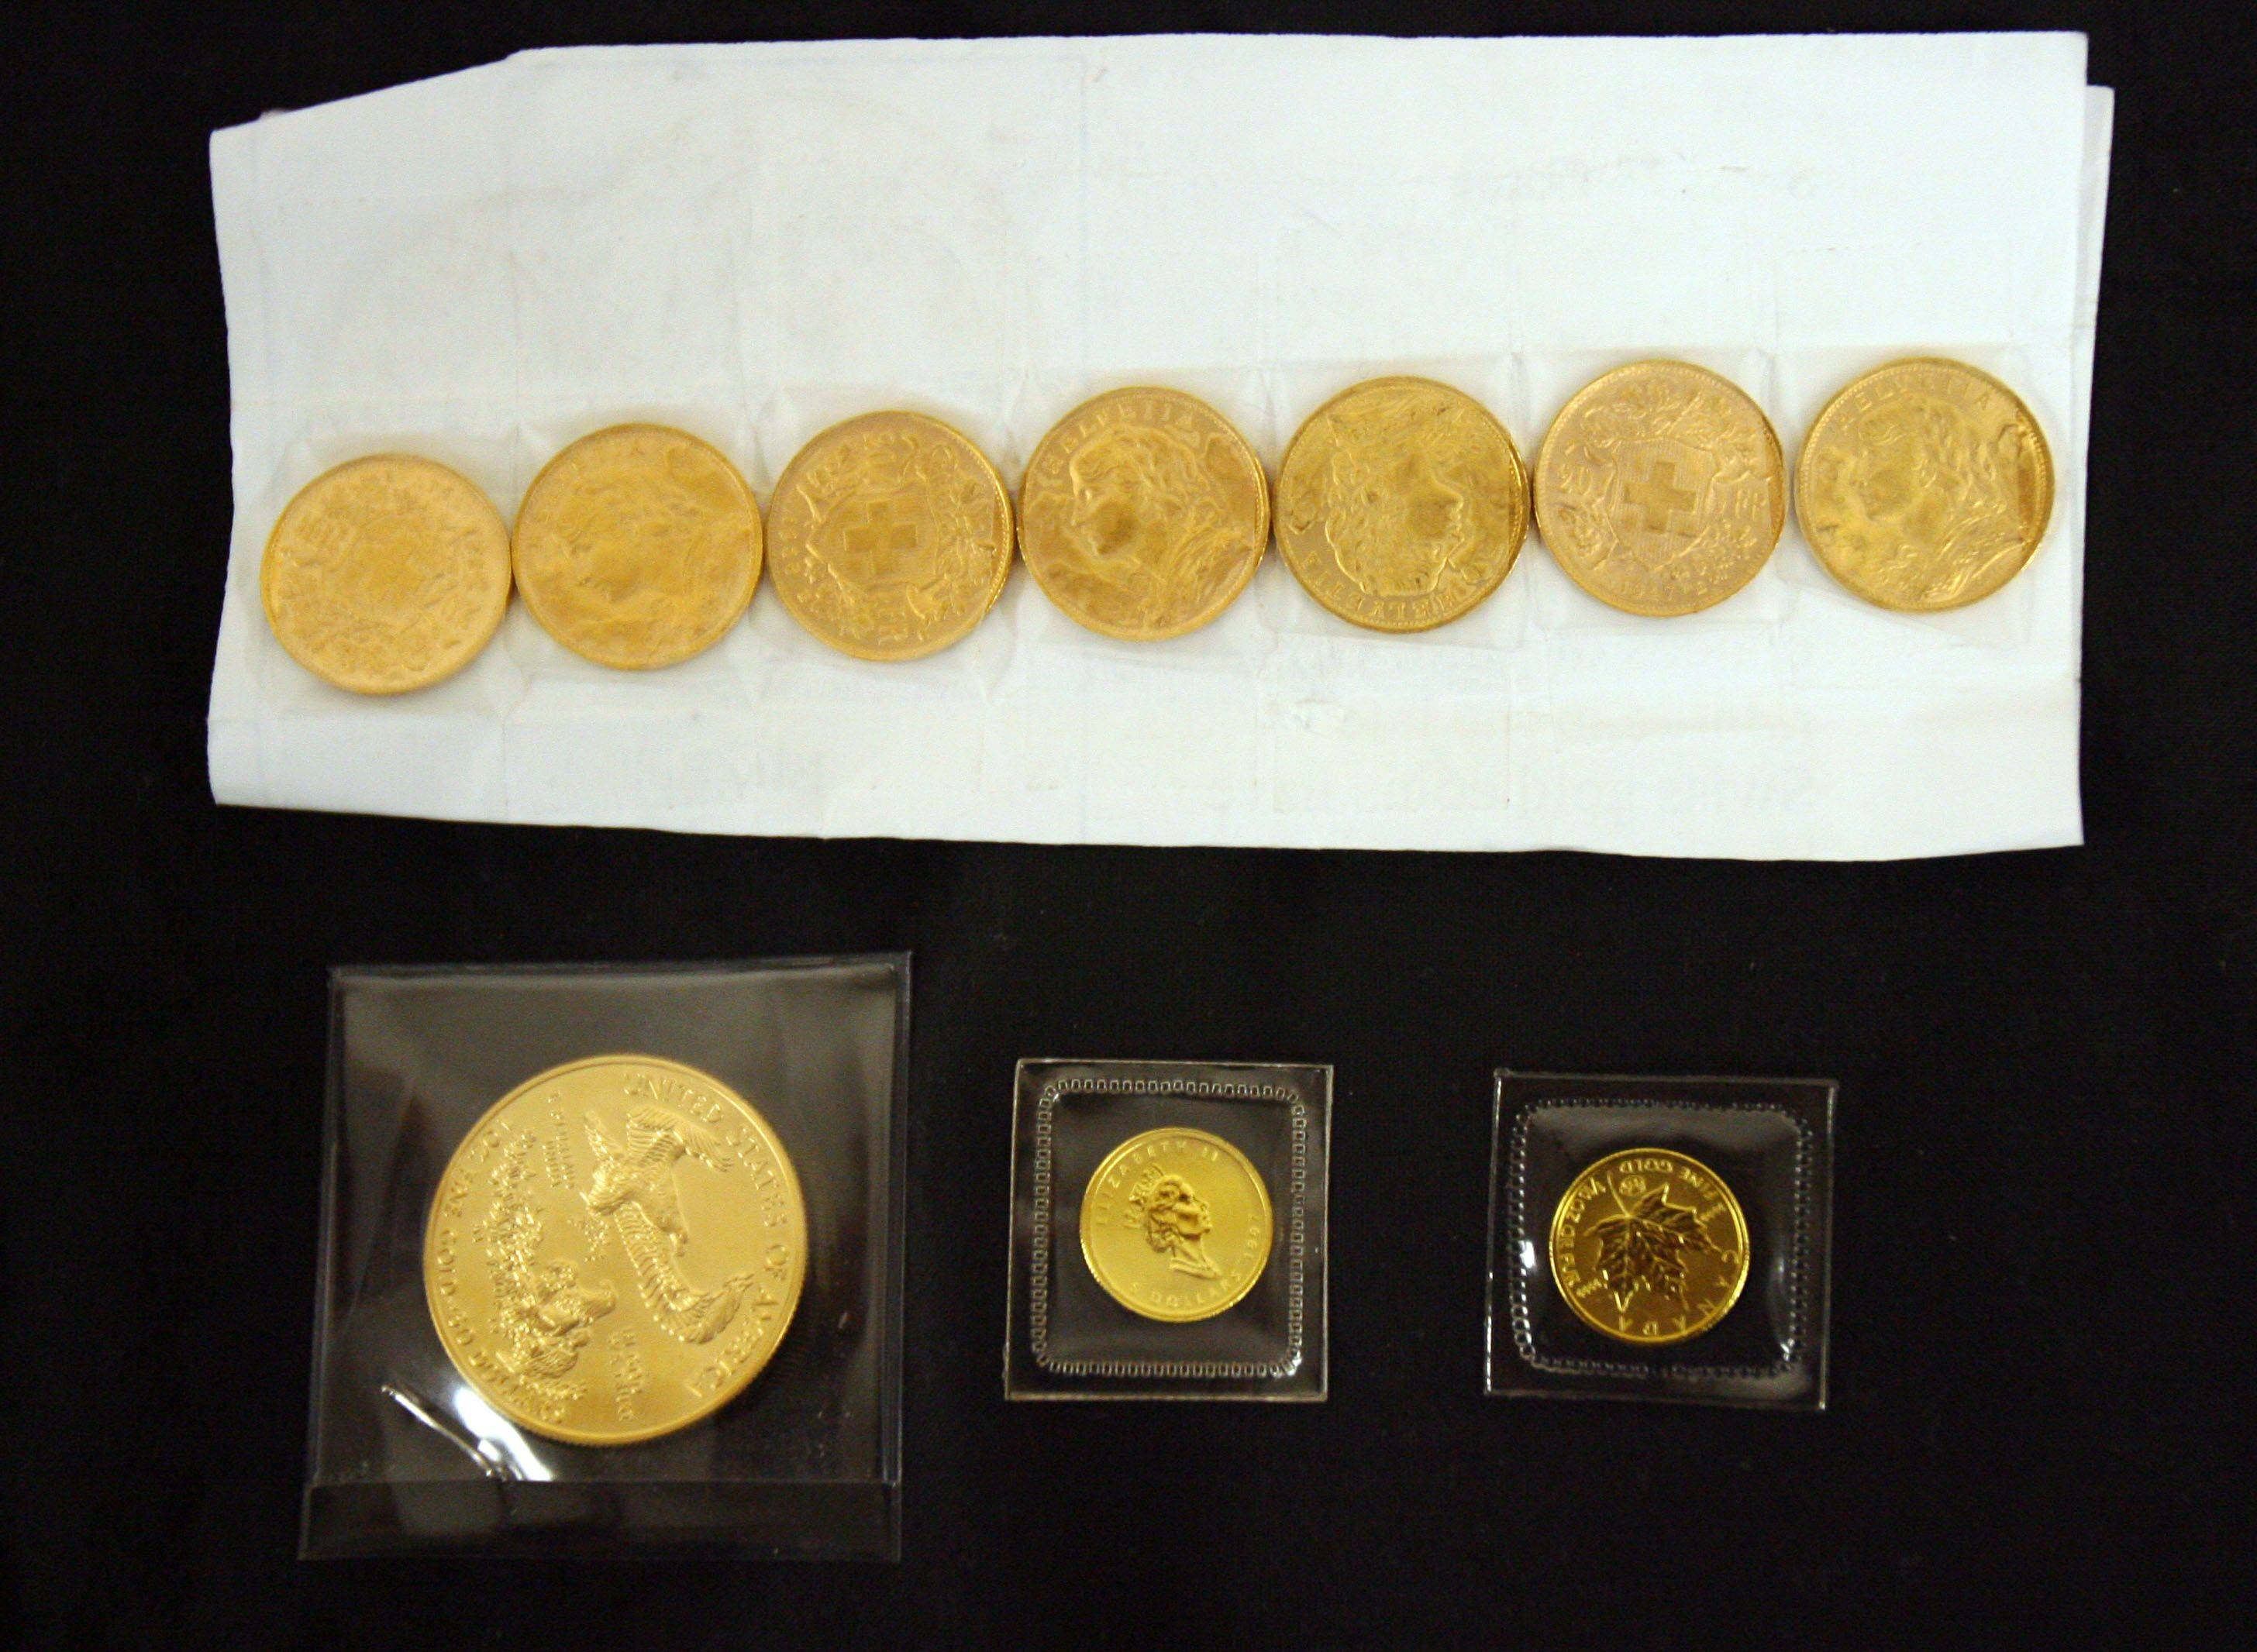 These 10 gold coins were found in three different Salvation Army kettles earlier this month in Lake County. On Monday the anonymous donor of the seven Swiss francs, seen at the top, donated seven more in the same Libertyville kettle.